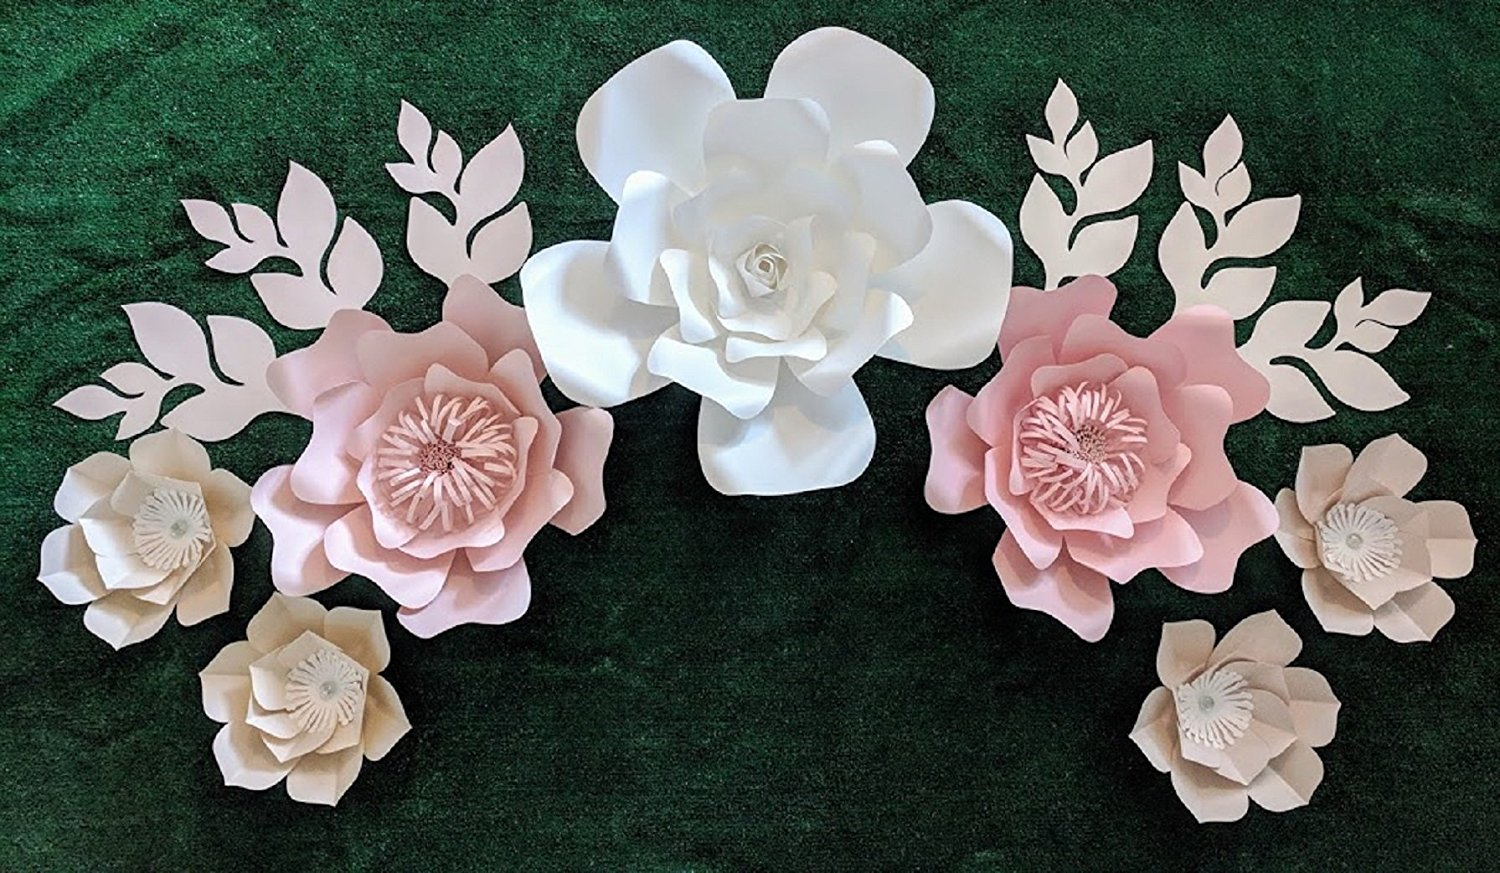 Rose Colors Paper Flowers For Wall Decoration Includes 7 Paper